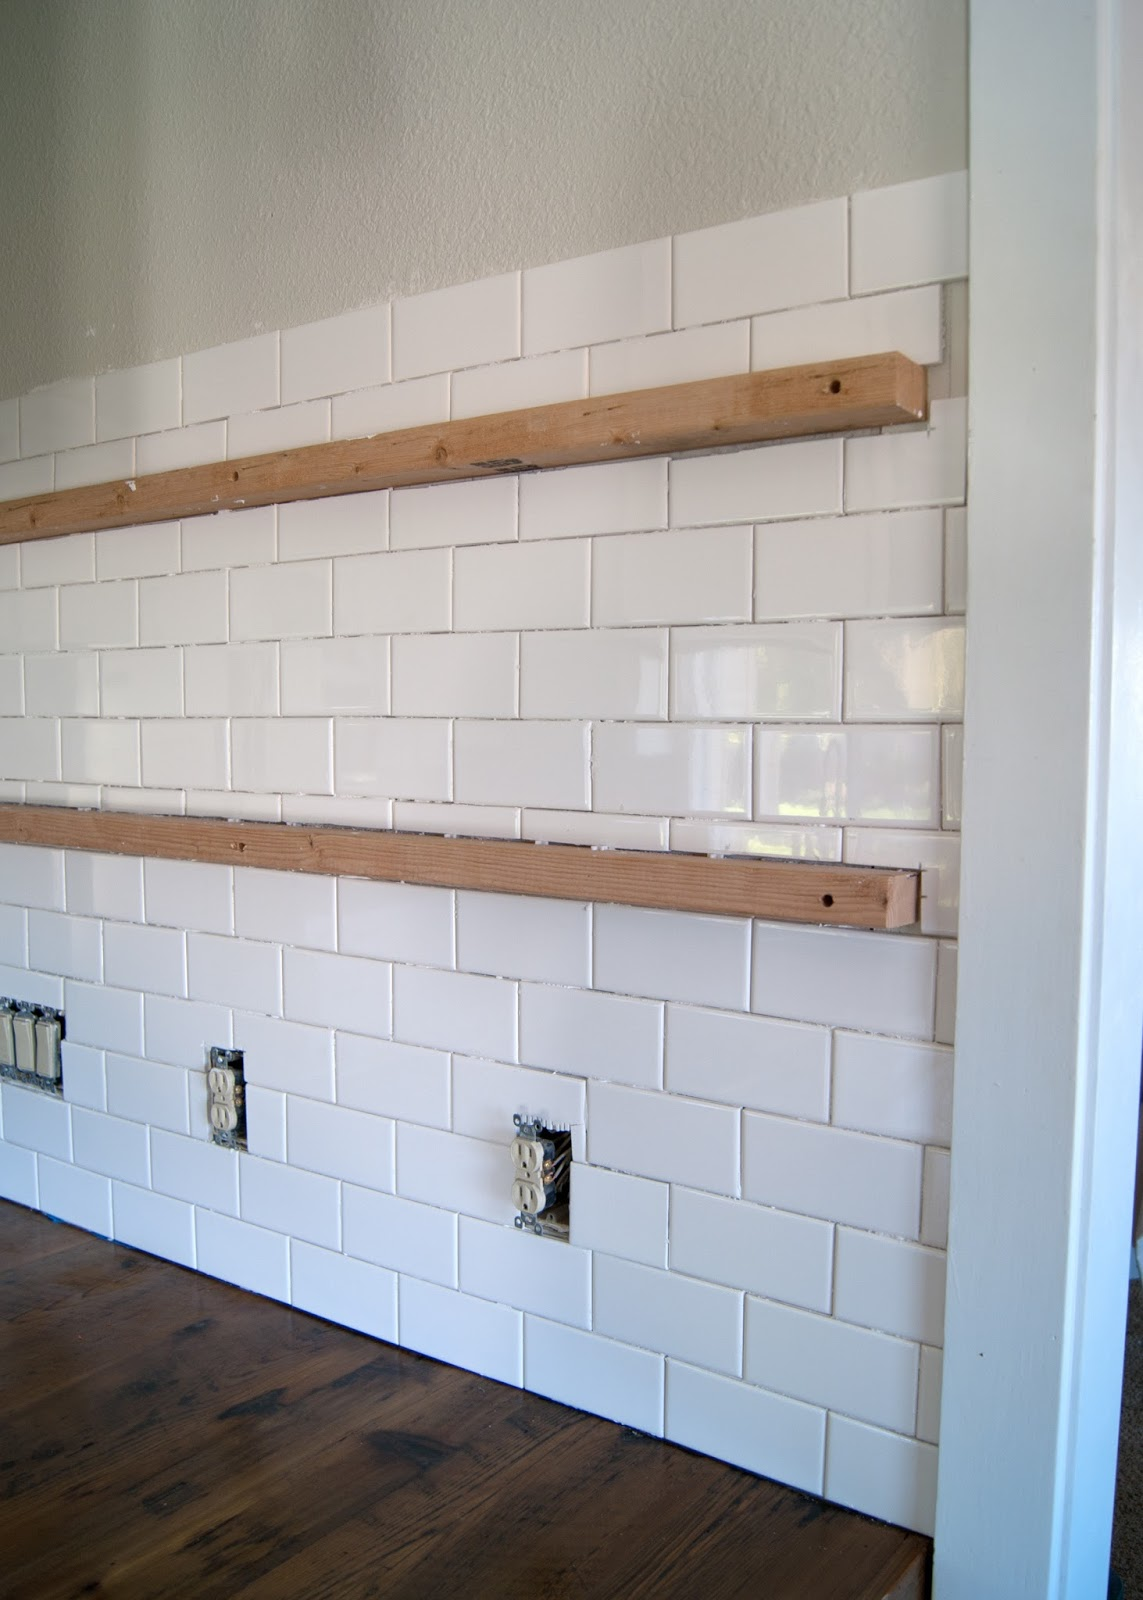 subway tile installation tips on grouting with fusion pro averie lane subway tile. Black Bedroom Furniture Sets. Home Design Ideas